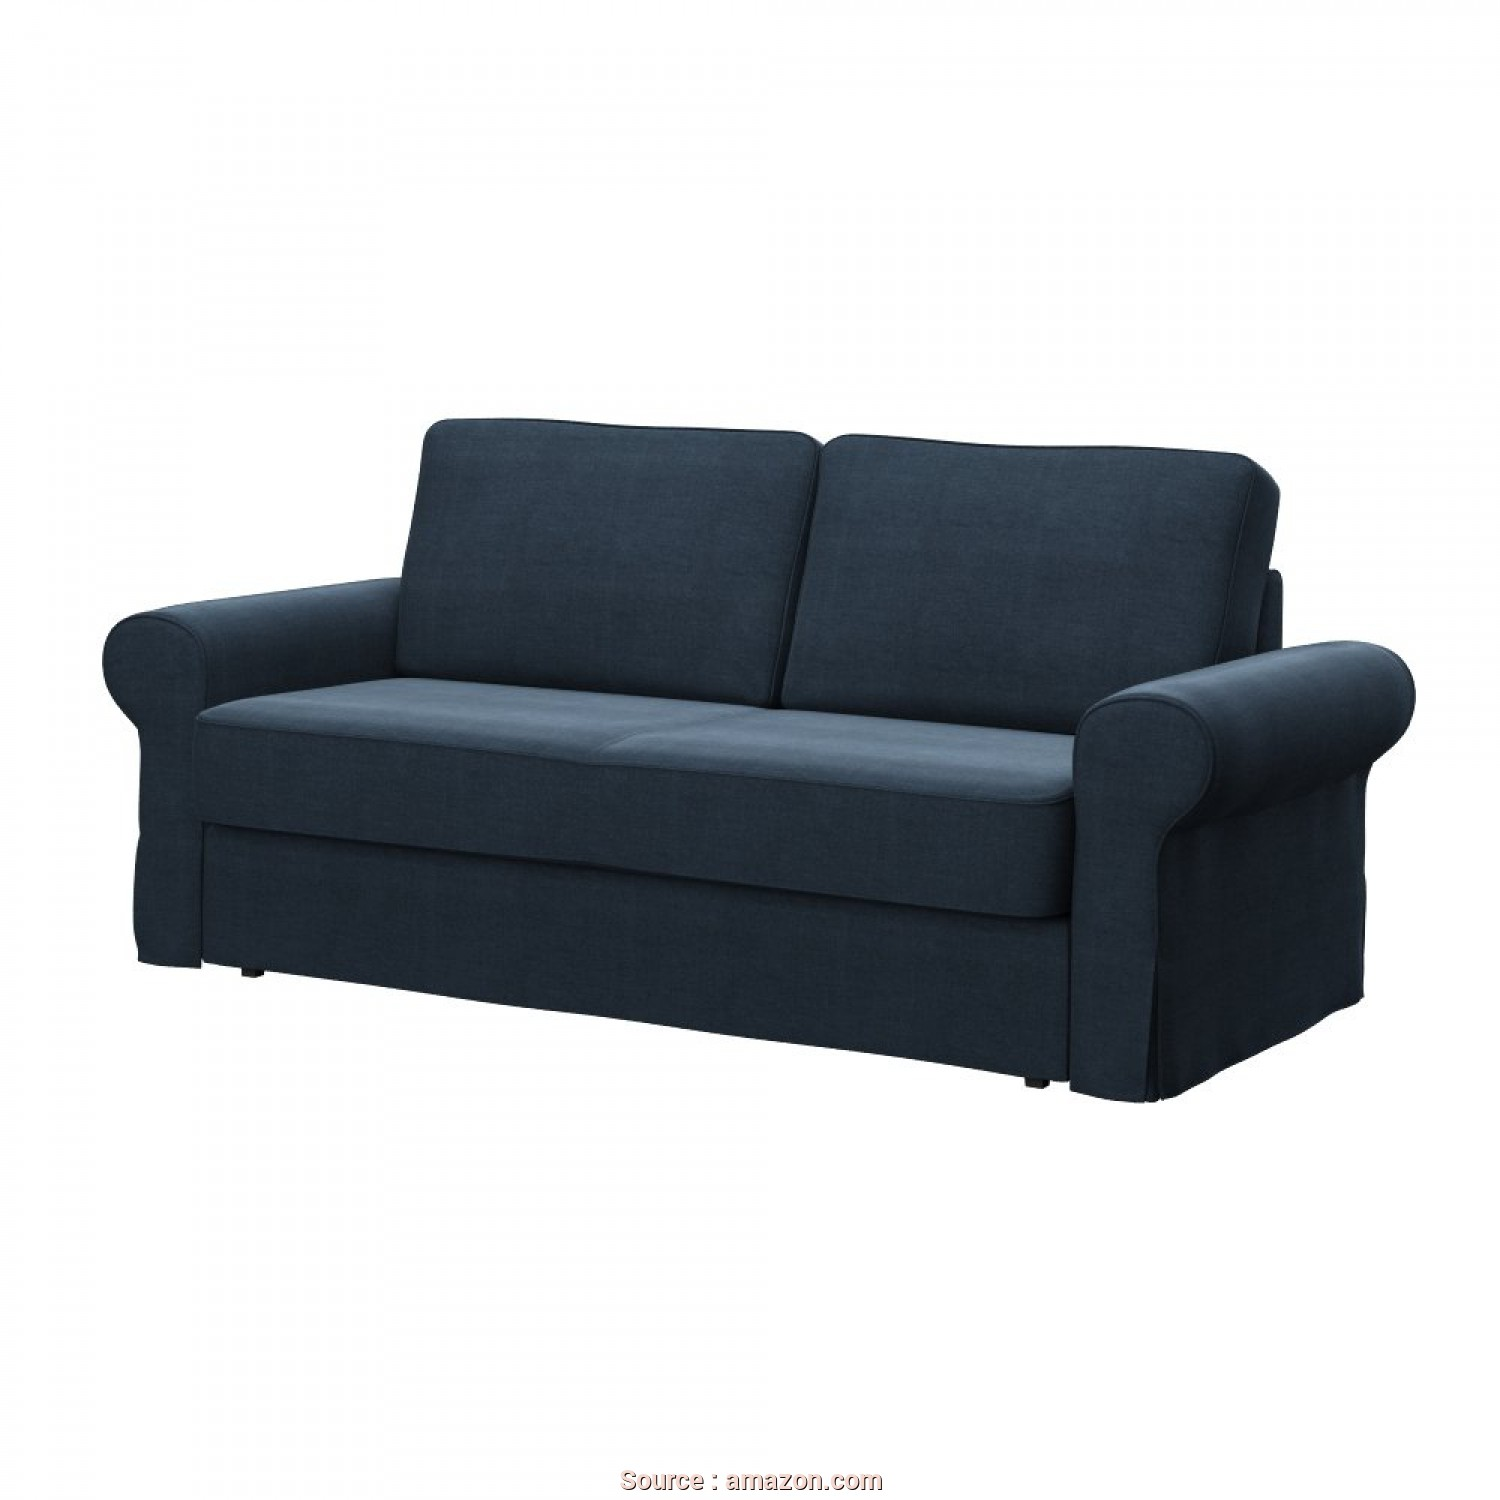 Ikea Backabro Sofa, With Chaise Instructions, Locale Amazon.Com: Soferia, IKEA BACKABRO 3-Seat Sofa-Bed Cover, Elegance Grey: Home & Kitchen